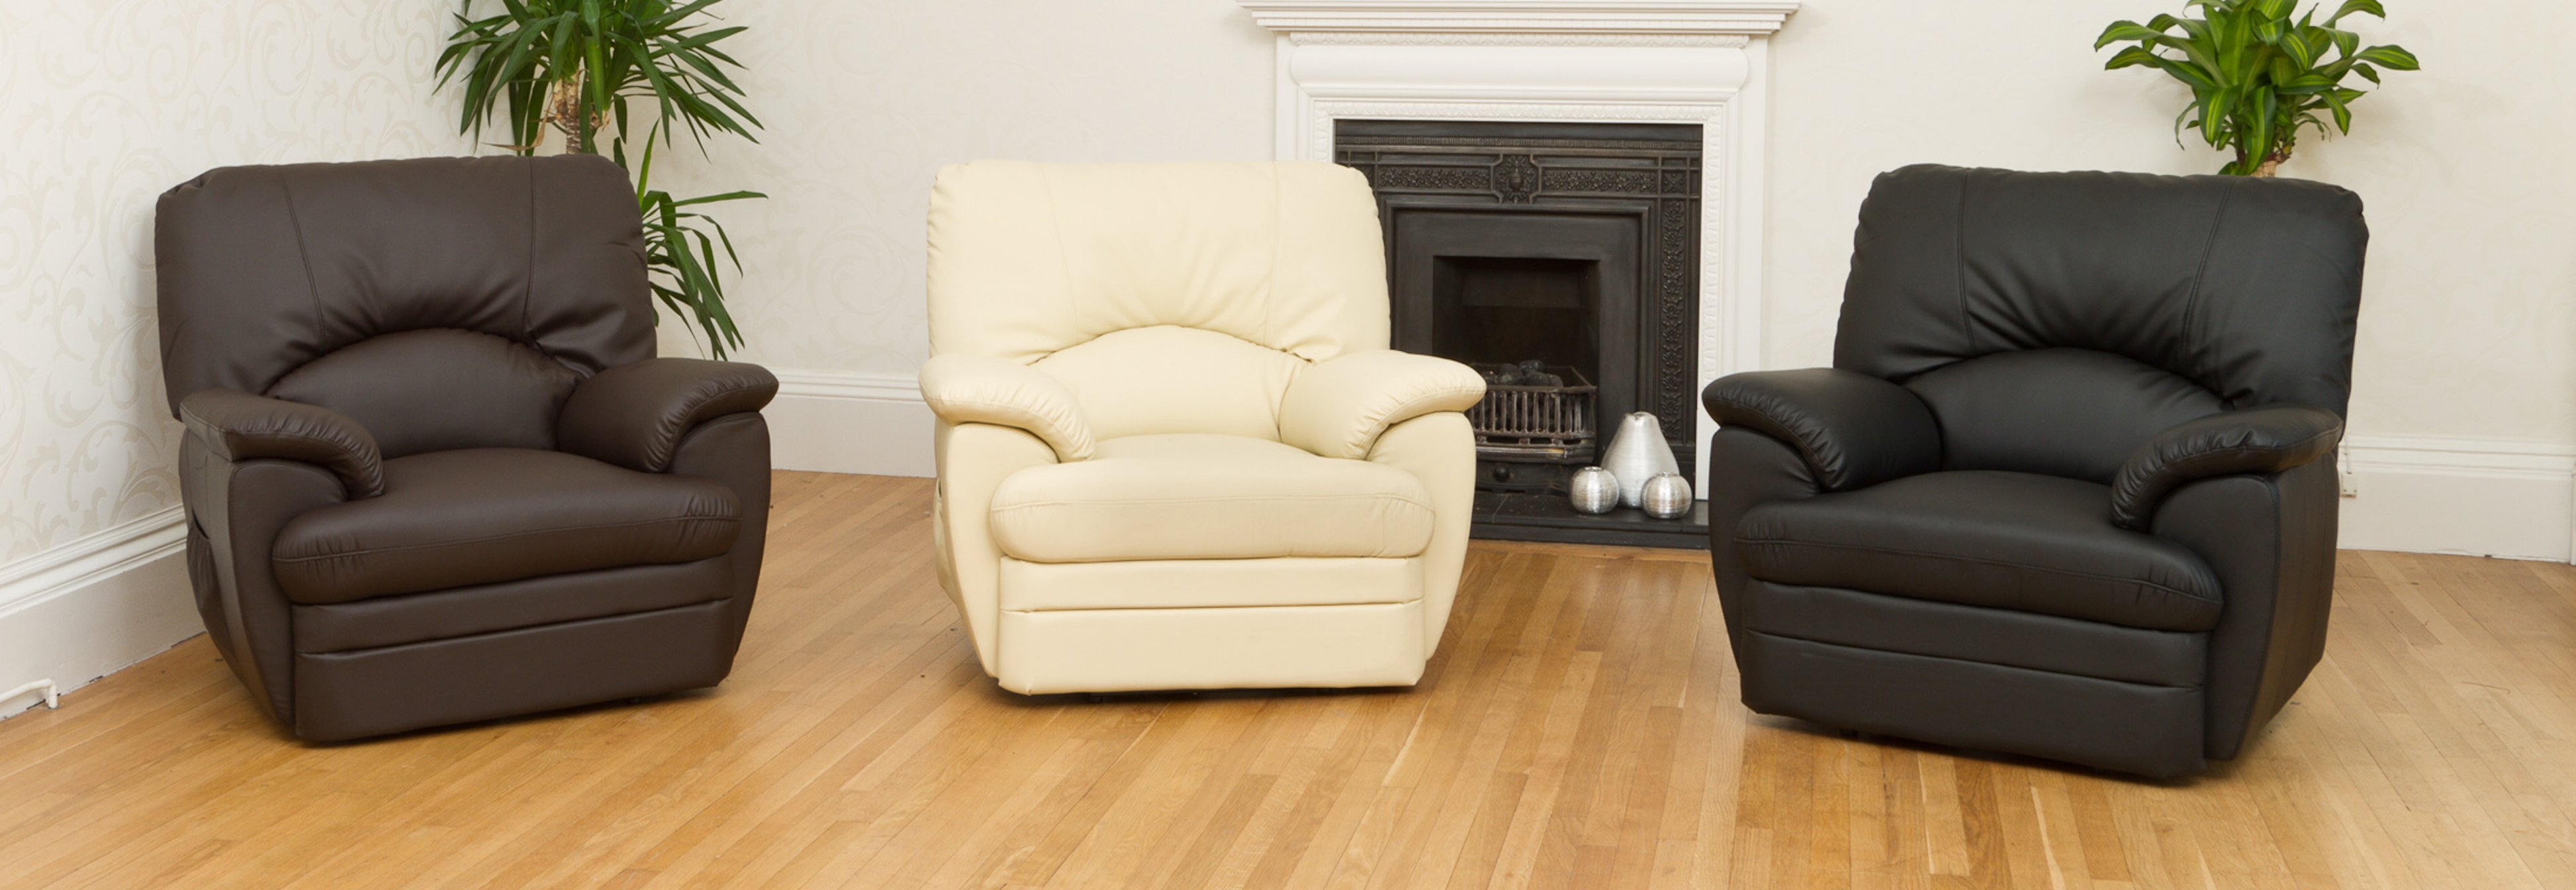 zz Tamworth Electric Recliner brown